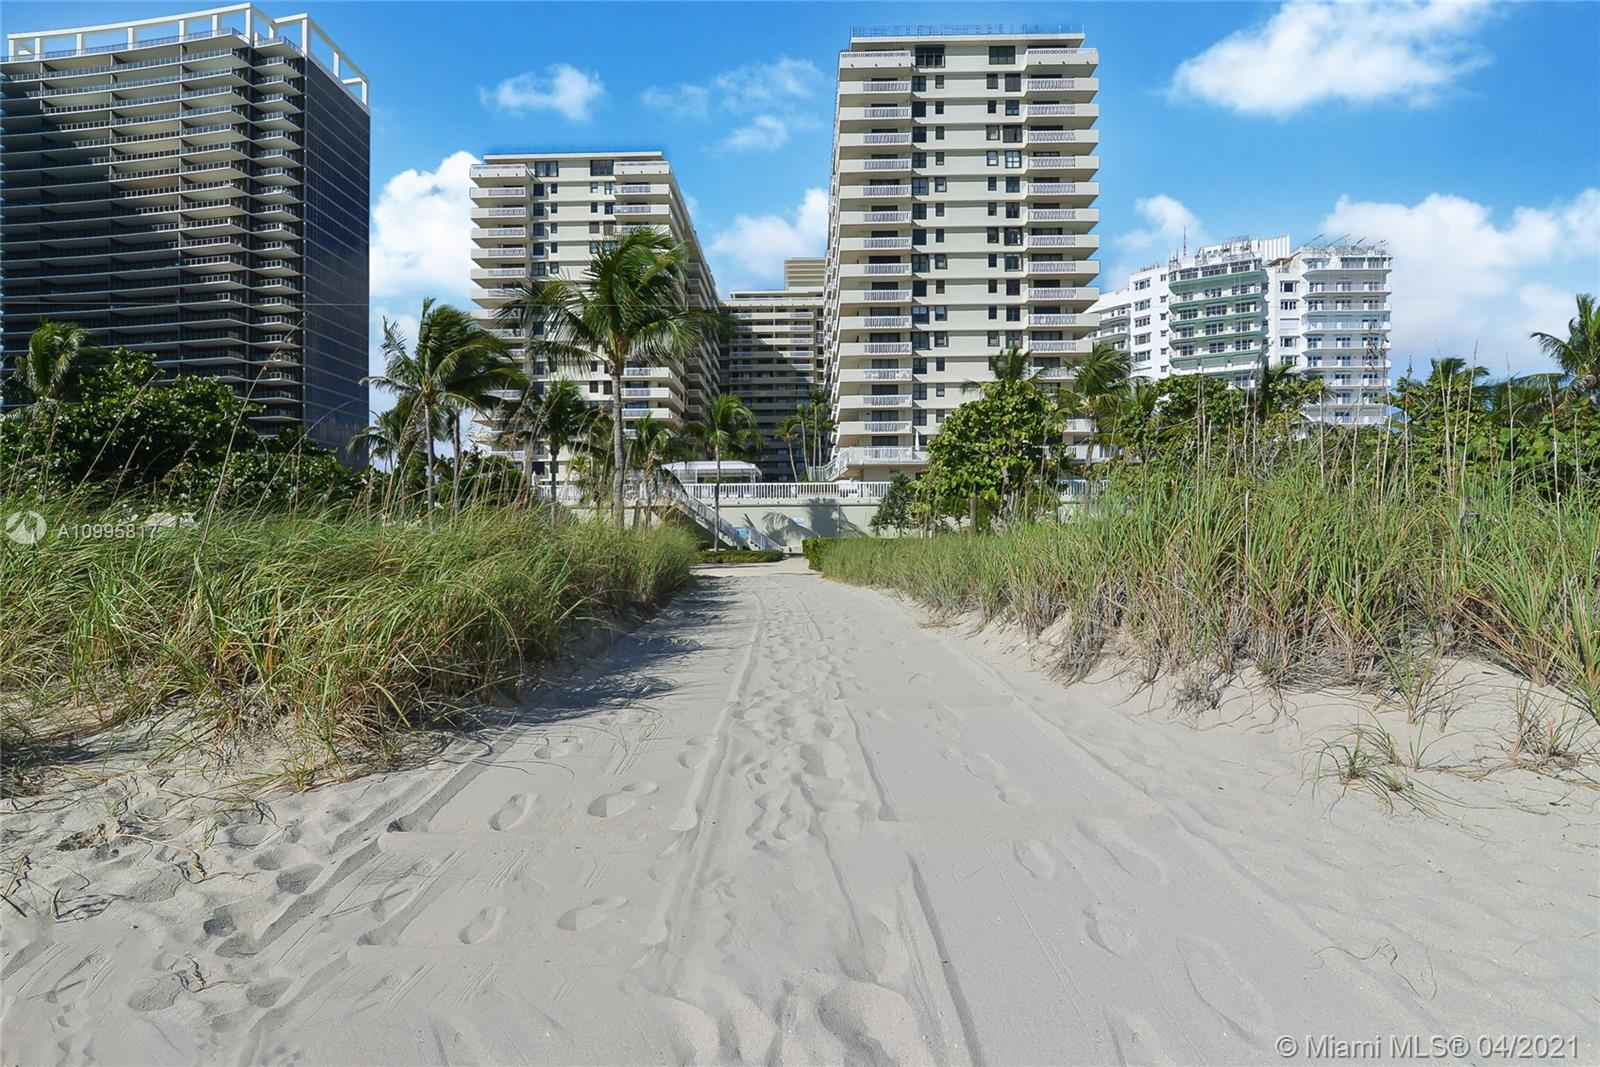 Photo of 9801 Collins Ave #5H, Bal Harbour, Florida, 33154 - Unit 5 H Balcony with Ocean Views and garden